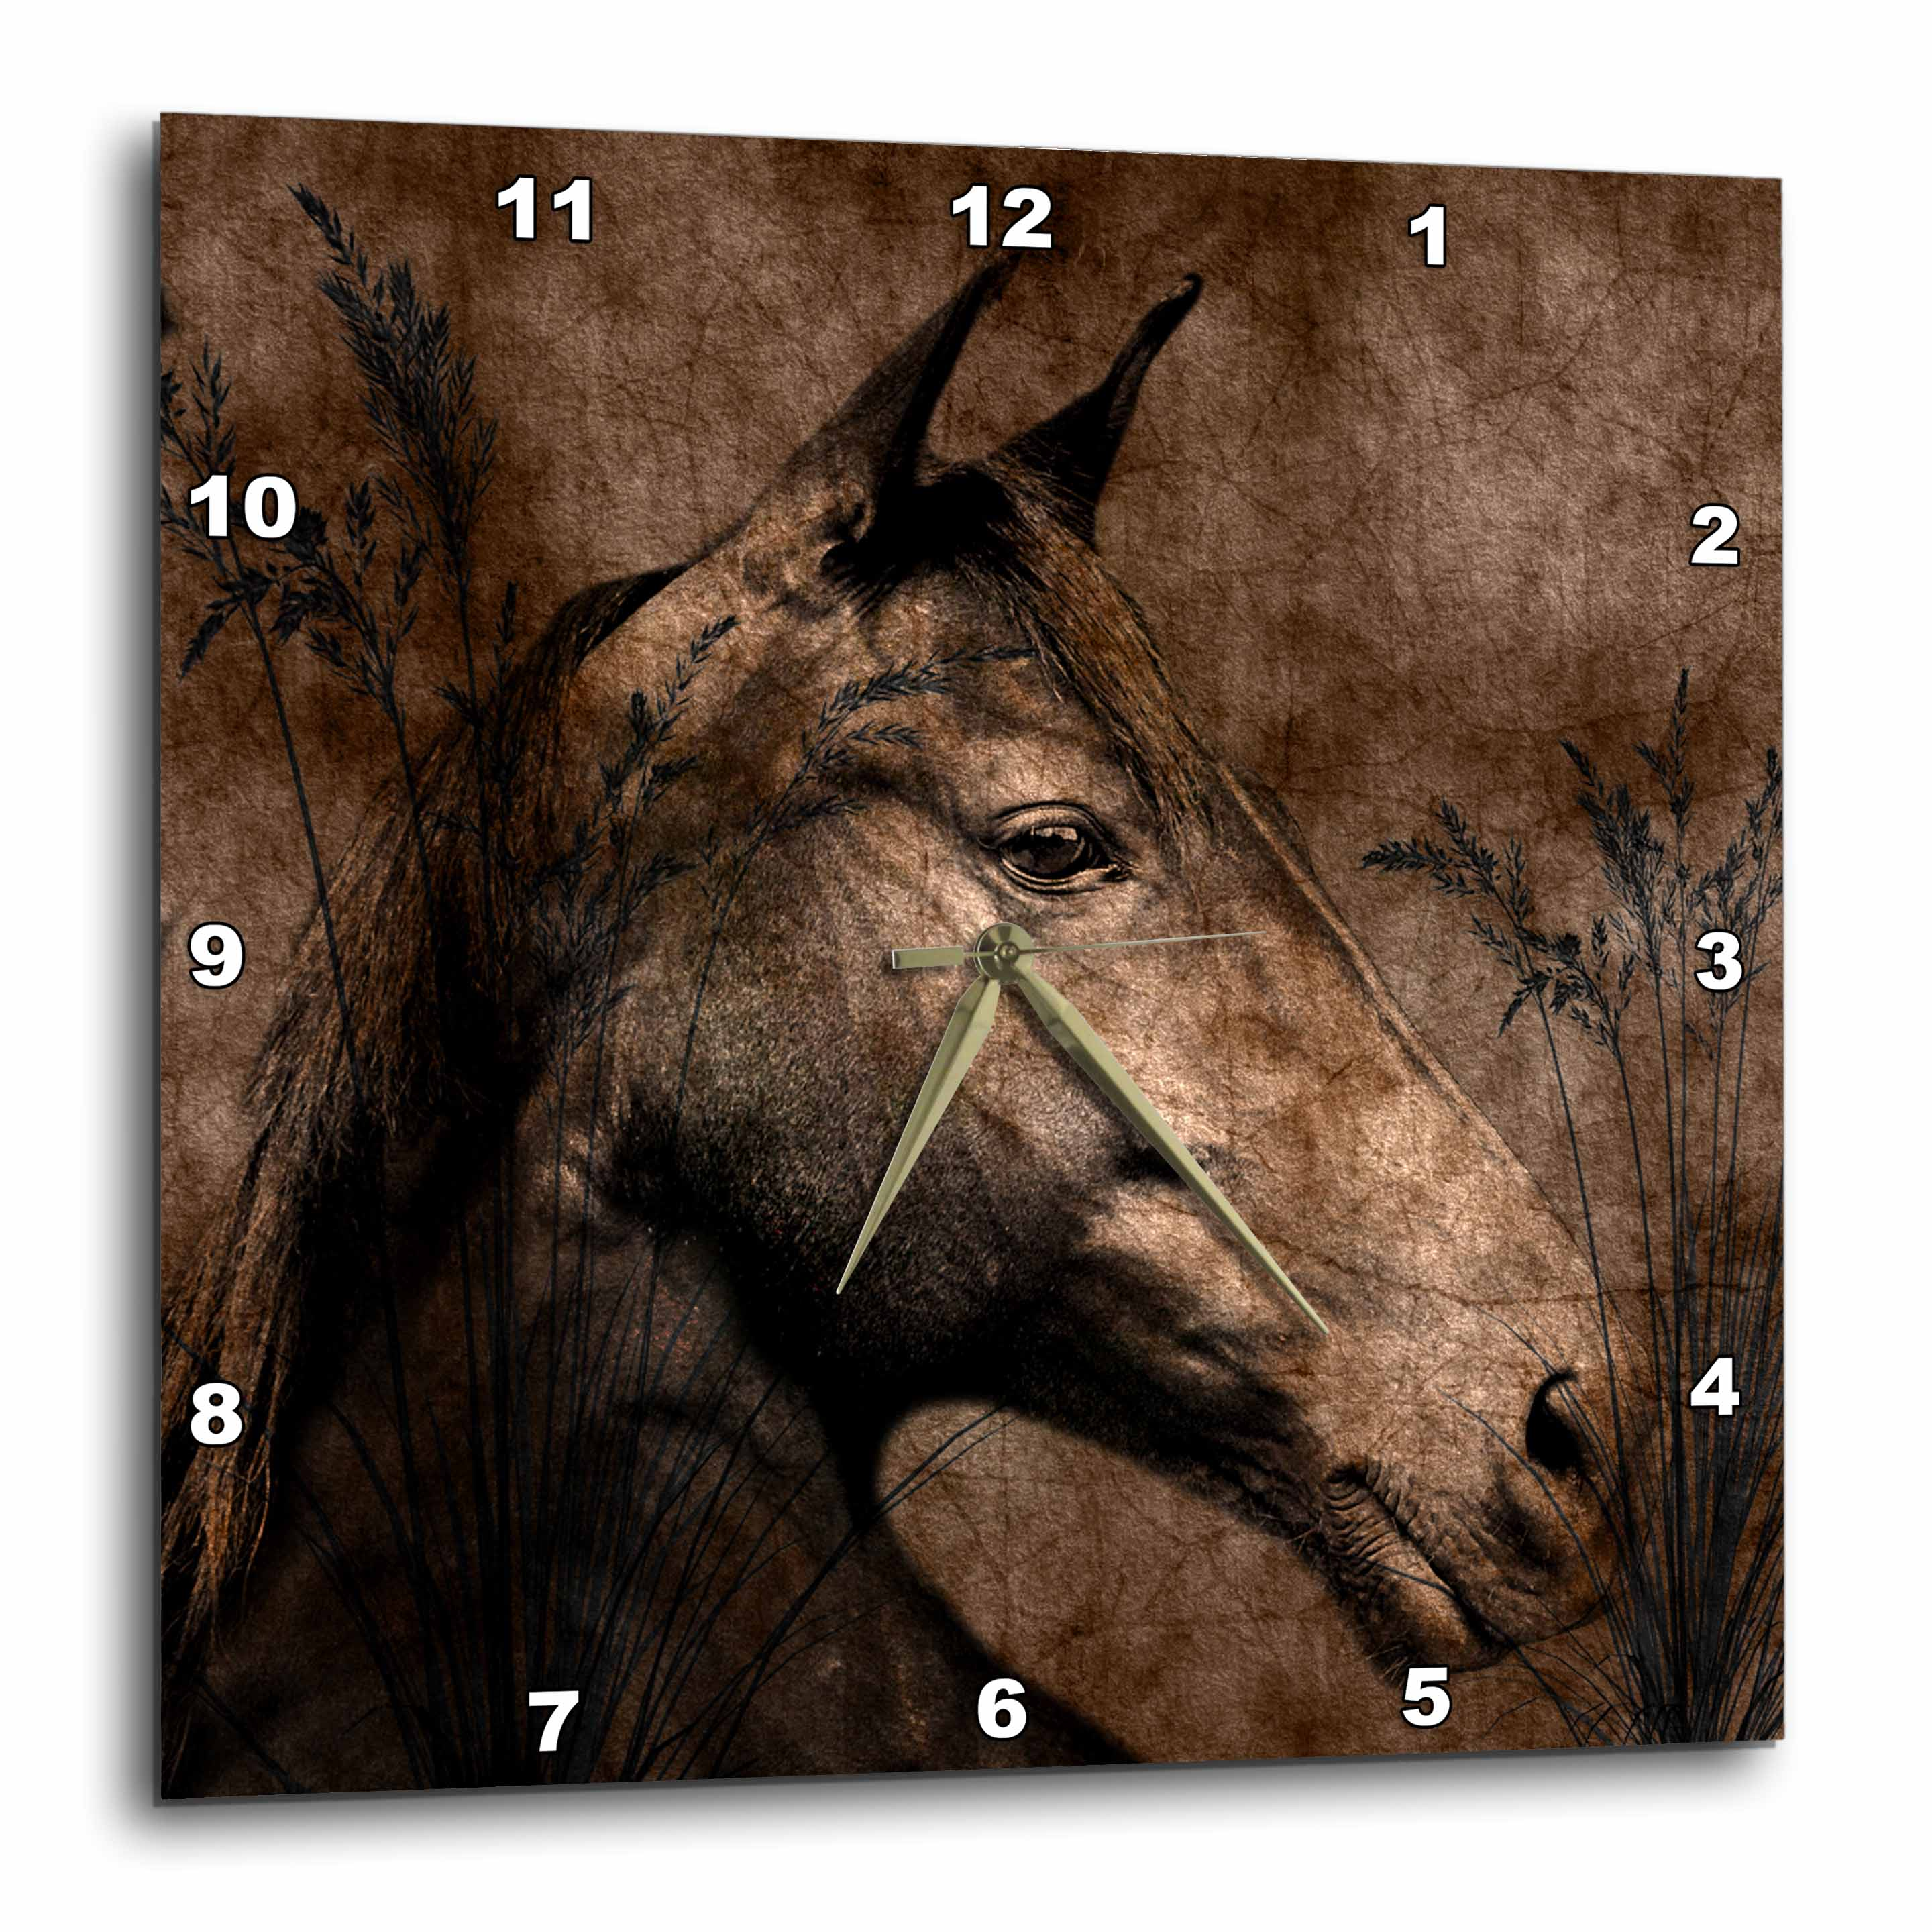 3dRose Horse in the Grass done in Western Brown Grunge and Charcoal., Wall Clock, 13 by 13-inch